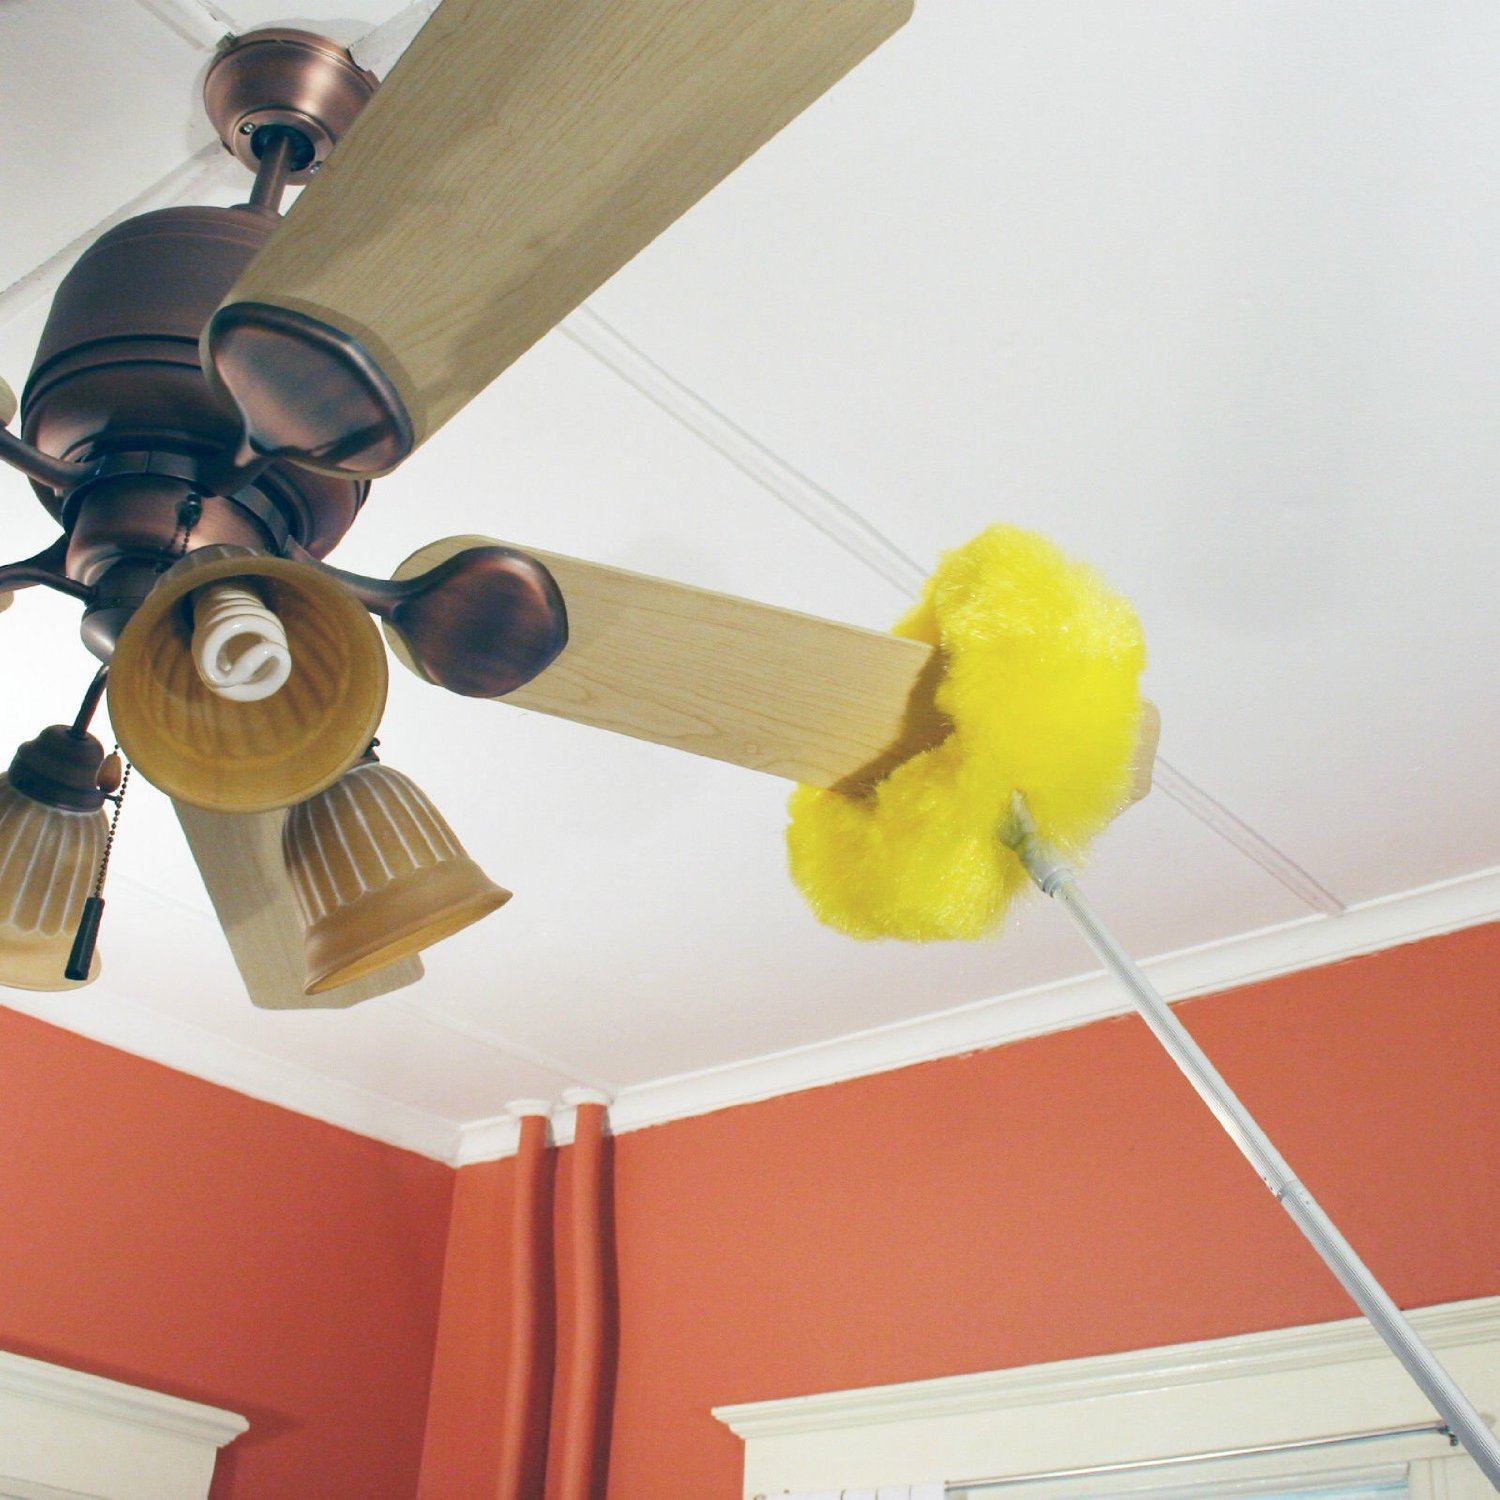 Extra long ceiling fan duster wrap around cleaning brush extends extra long ceiling fan duster wrap around cleaning brush extends 47 walmart aloadofball Images